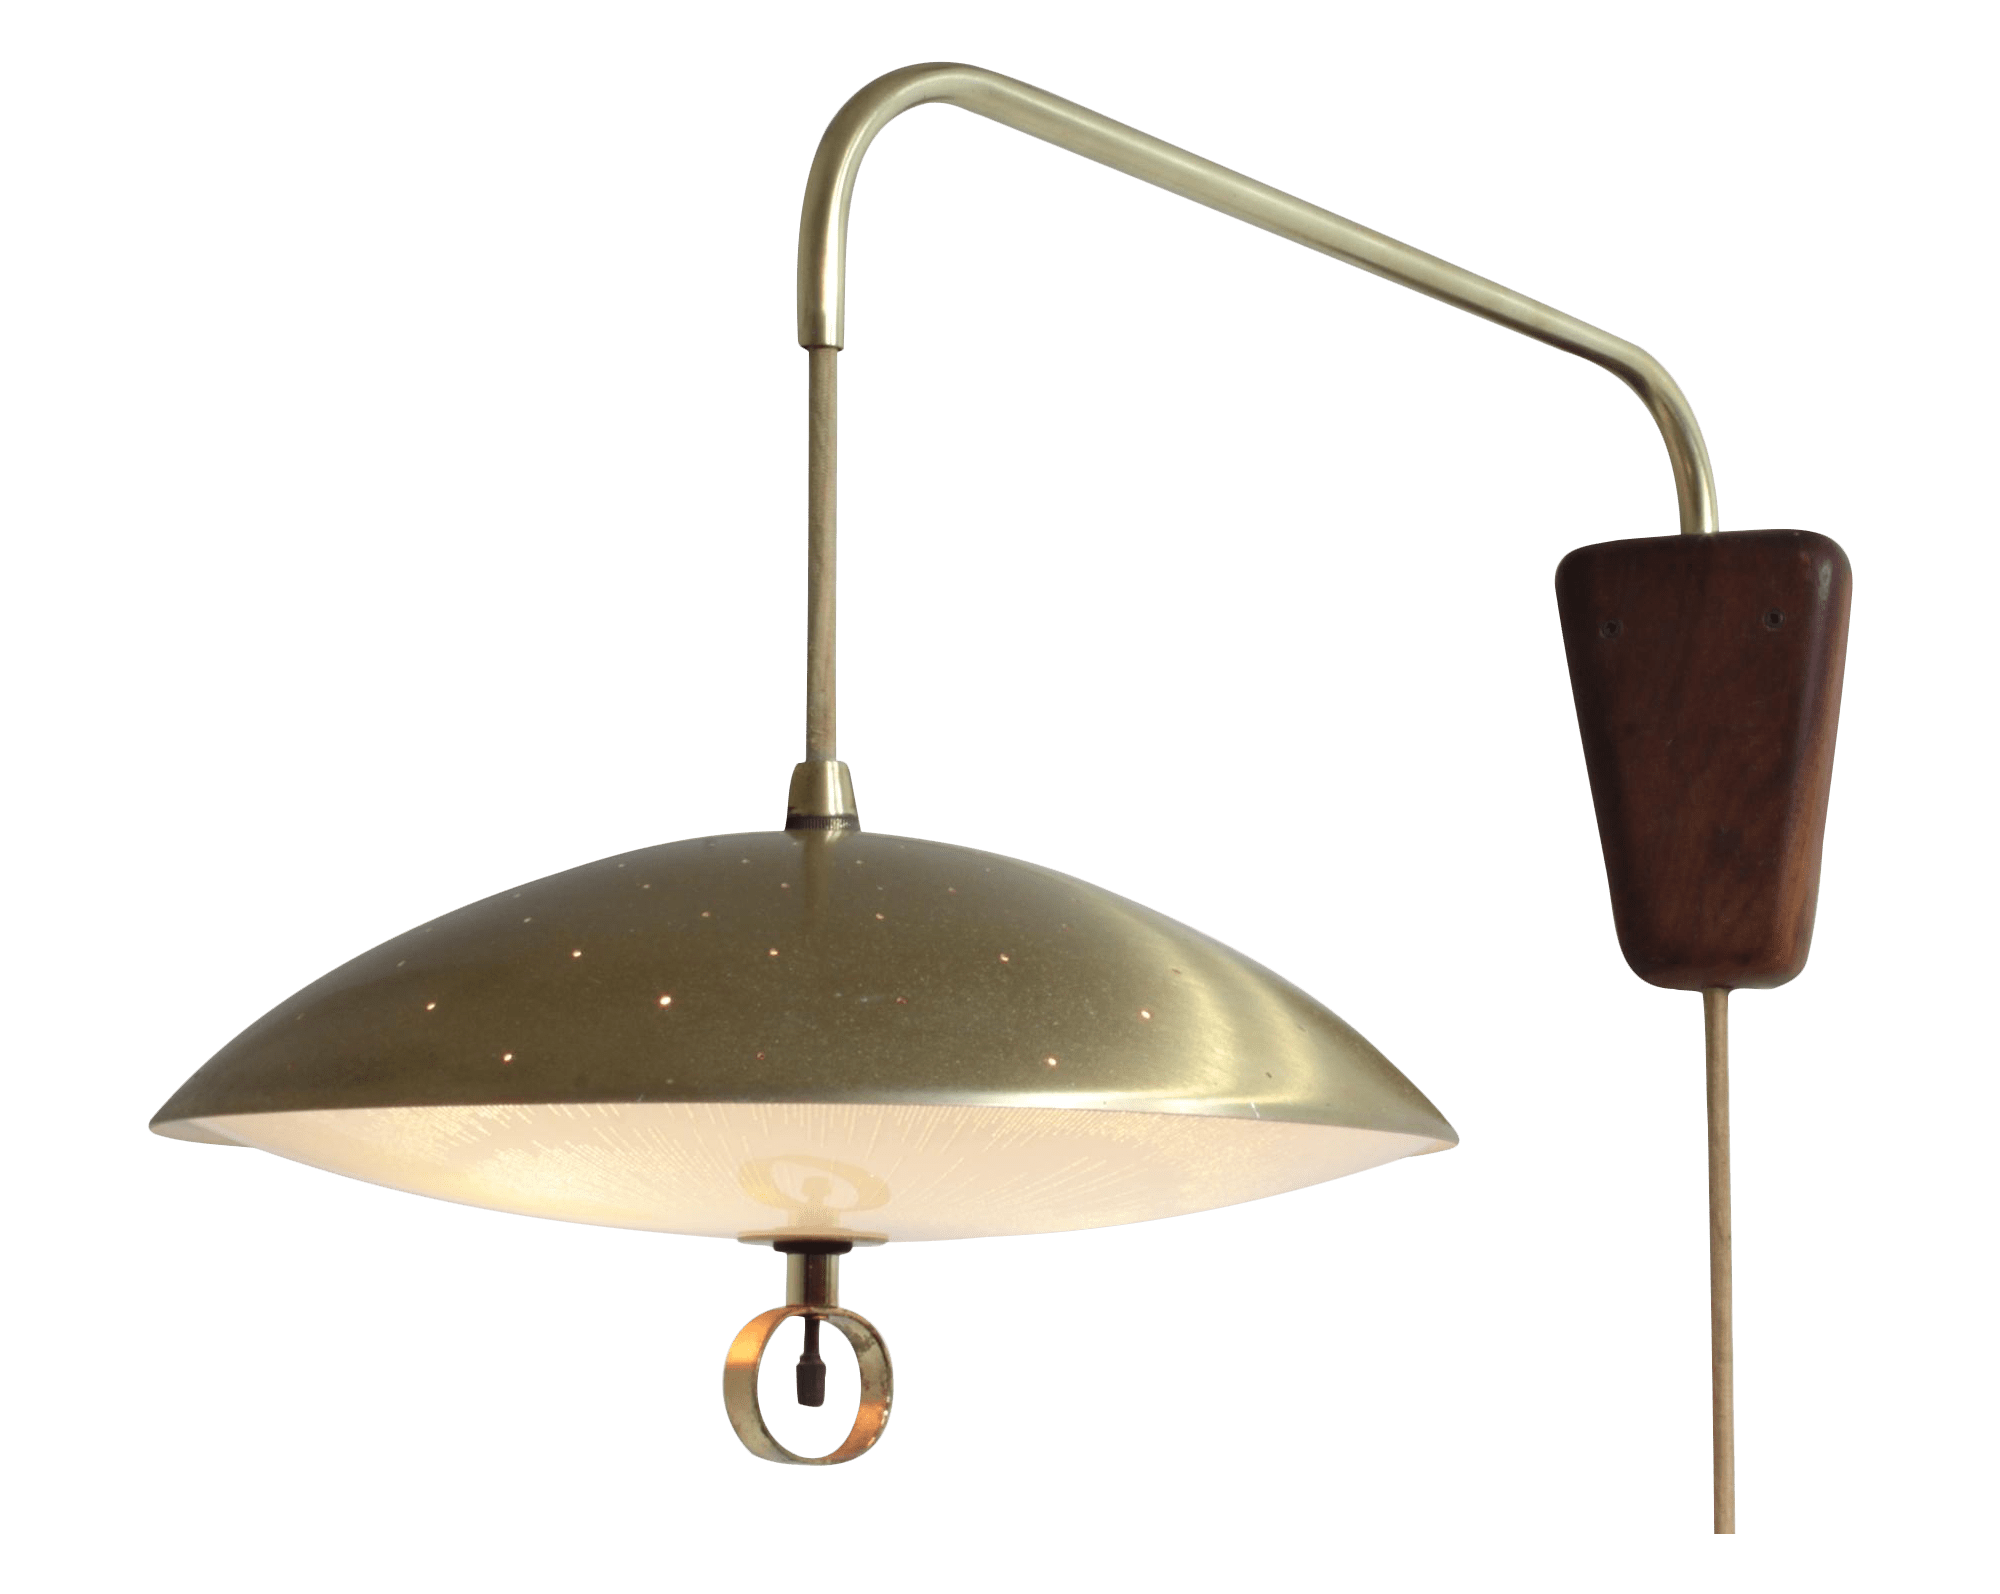 Mid Century Swing Arm Wall Lamp Mid Century Swing Arm Wall Lamp Chairish